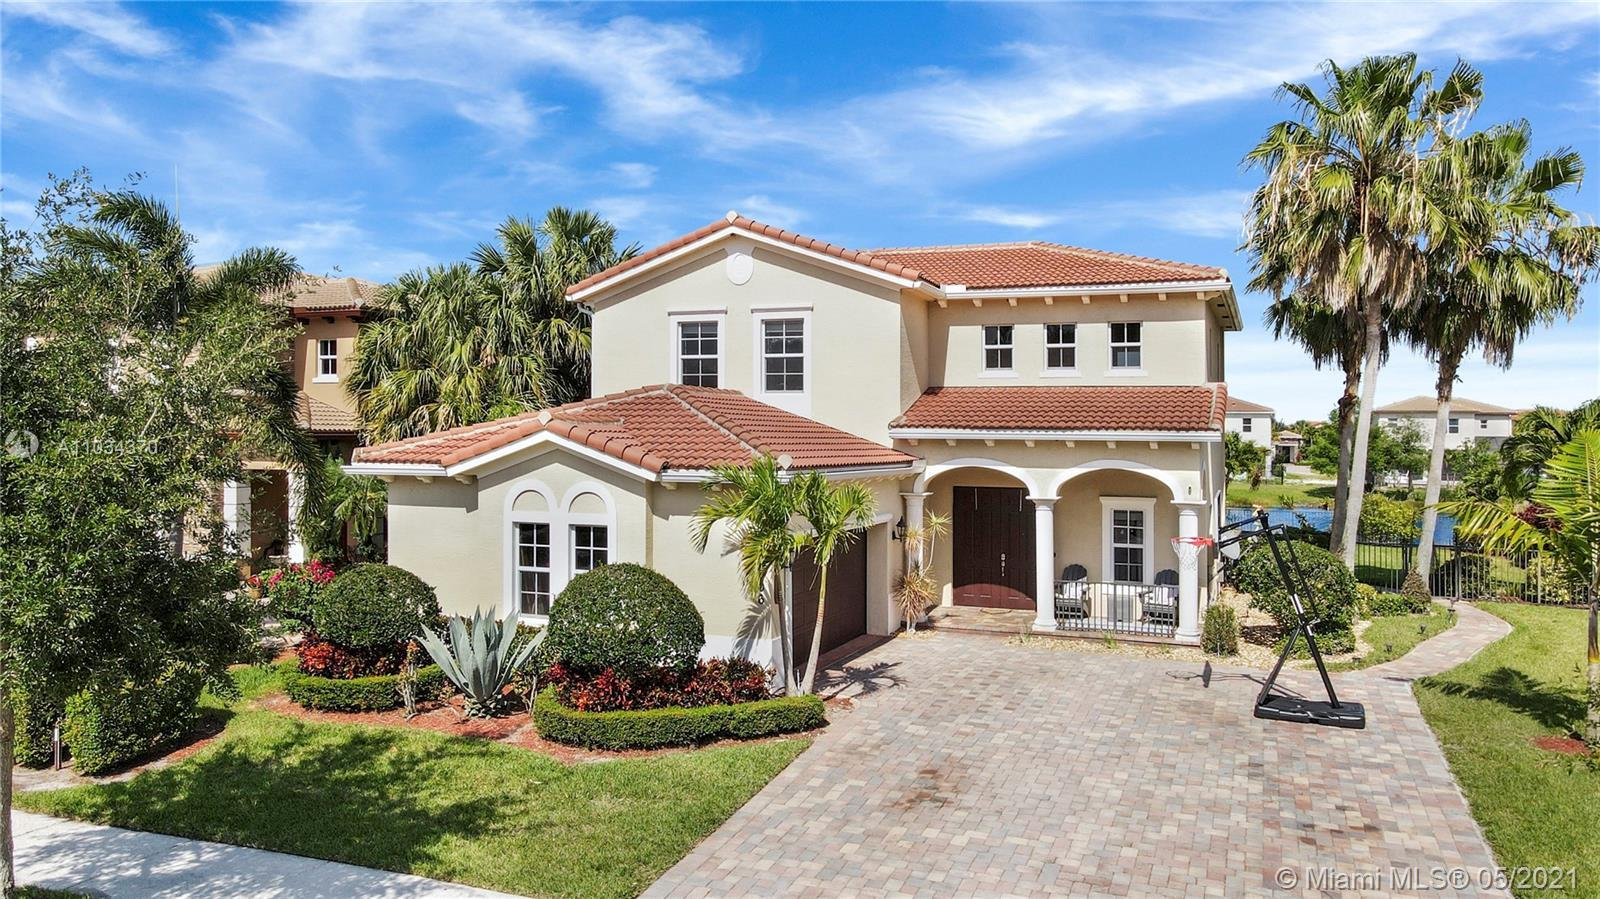 Welcome Home to Rialto, Jupiter's Premier Gated Community!! Located on the Lake, this San Marco Mode